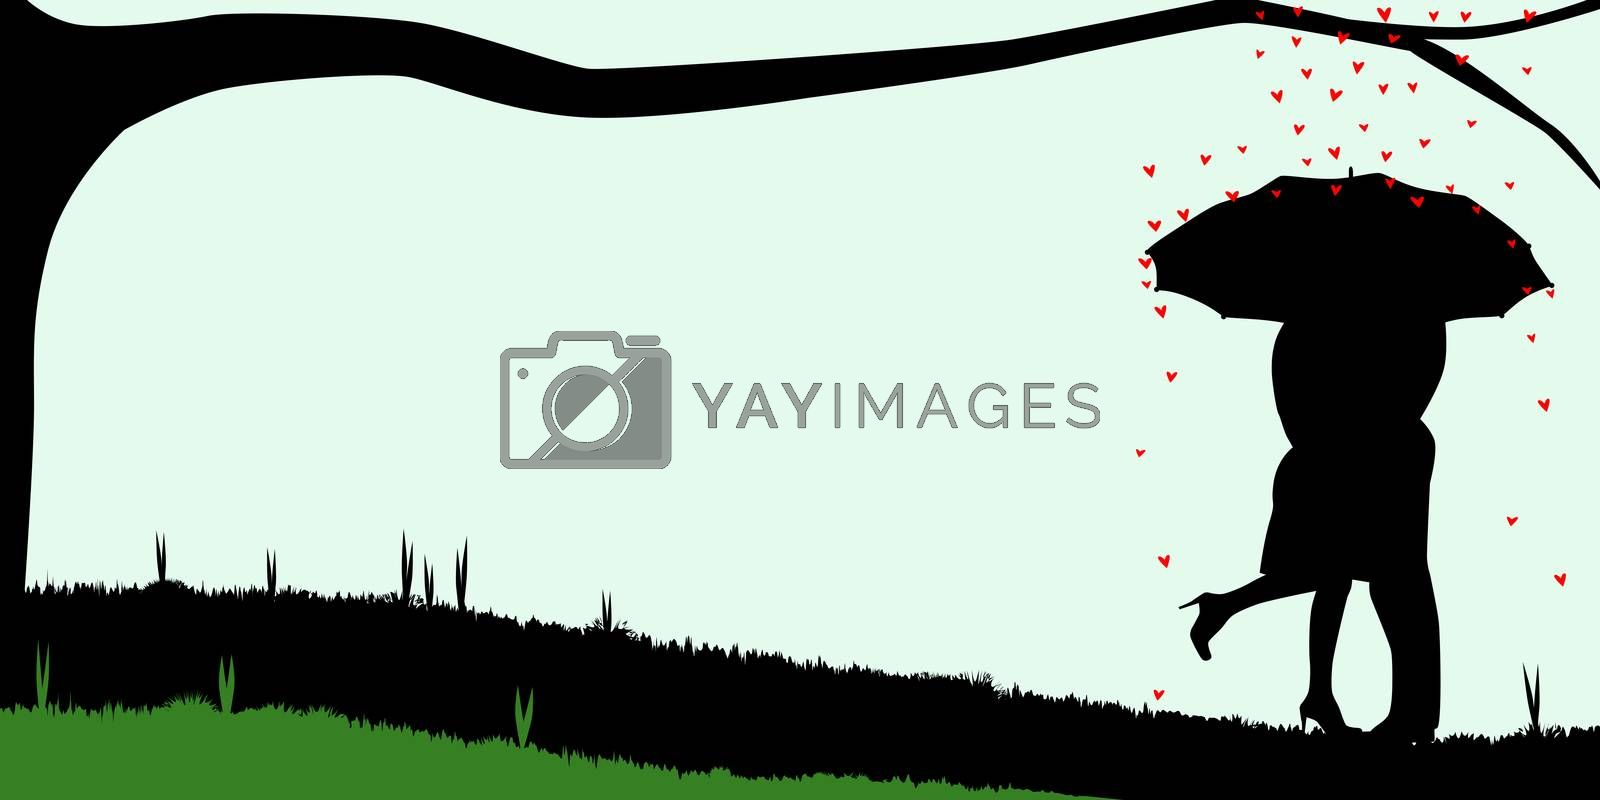 A courting couple, silhouette ,, kissing under an umbrella, during a downpour of red cupids hearts